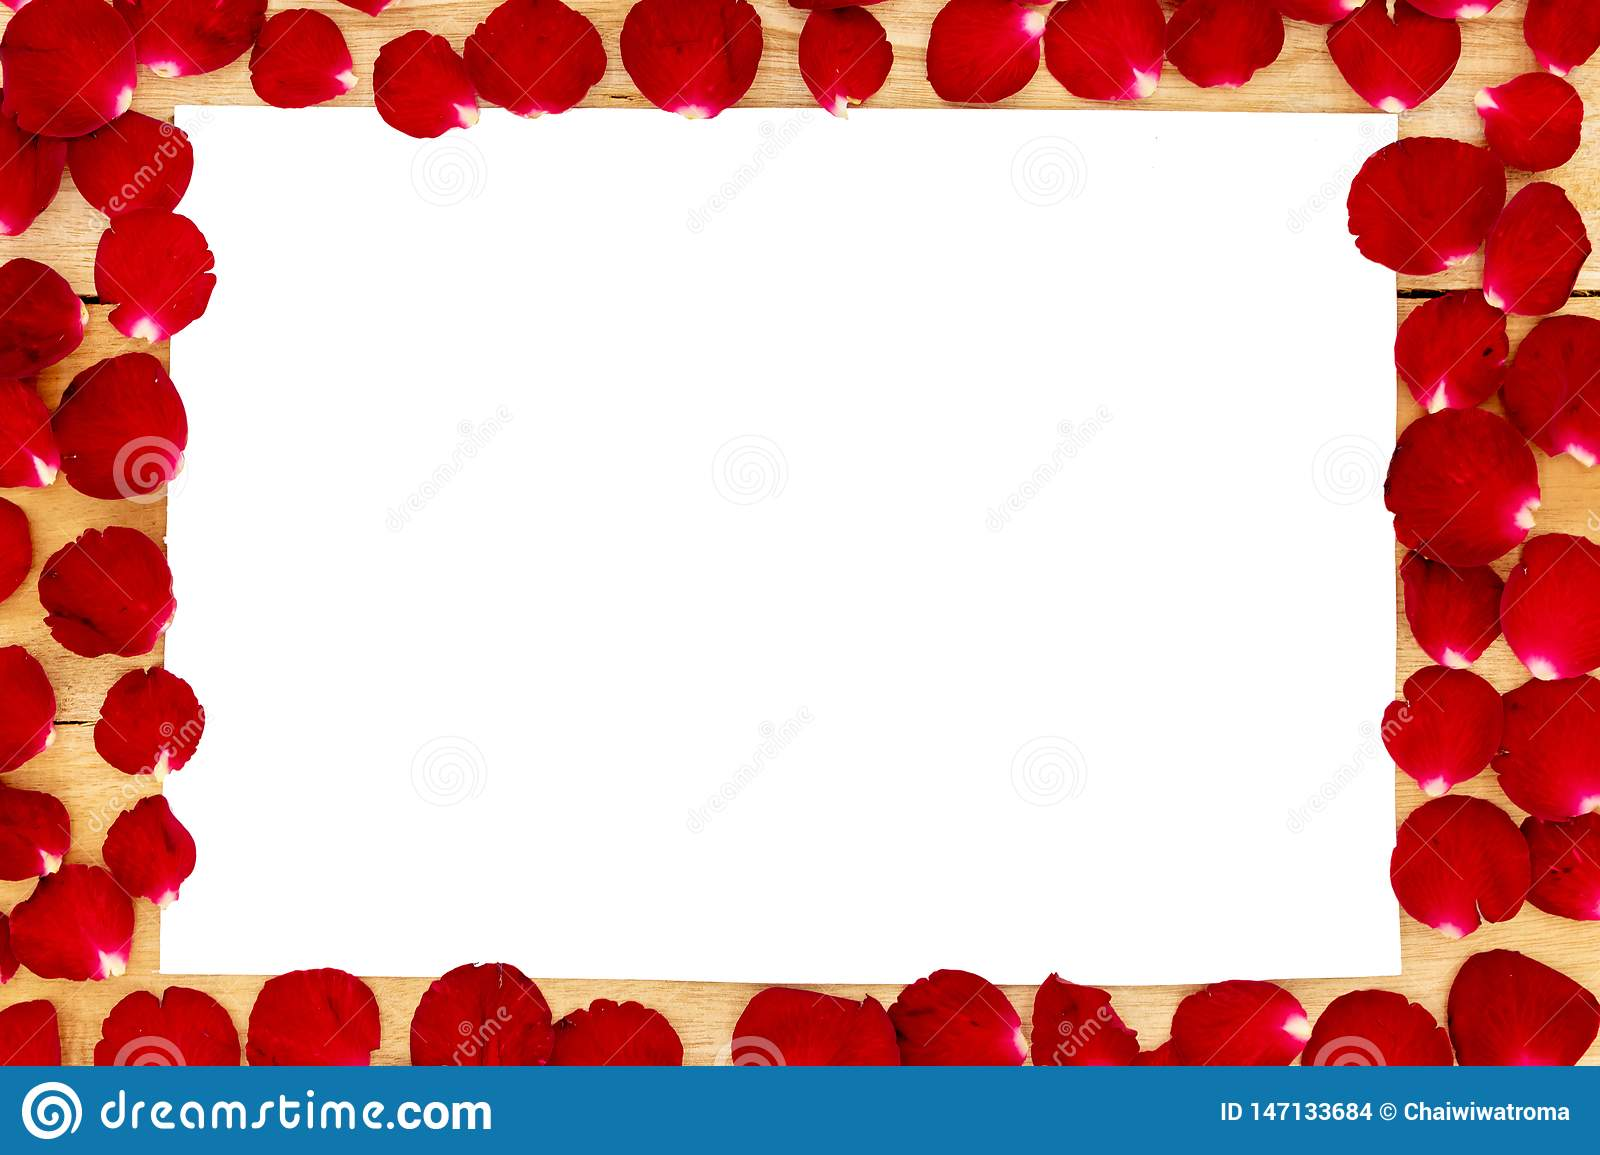 Rose petals arranged in a white frame